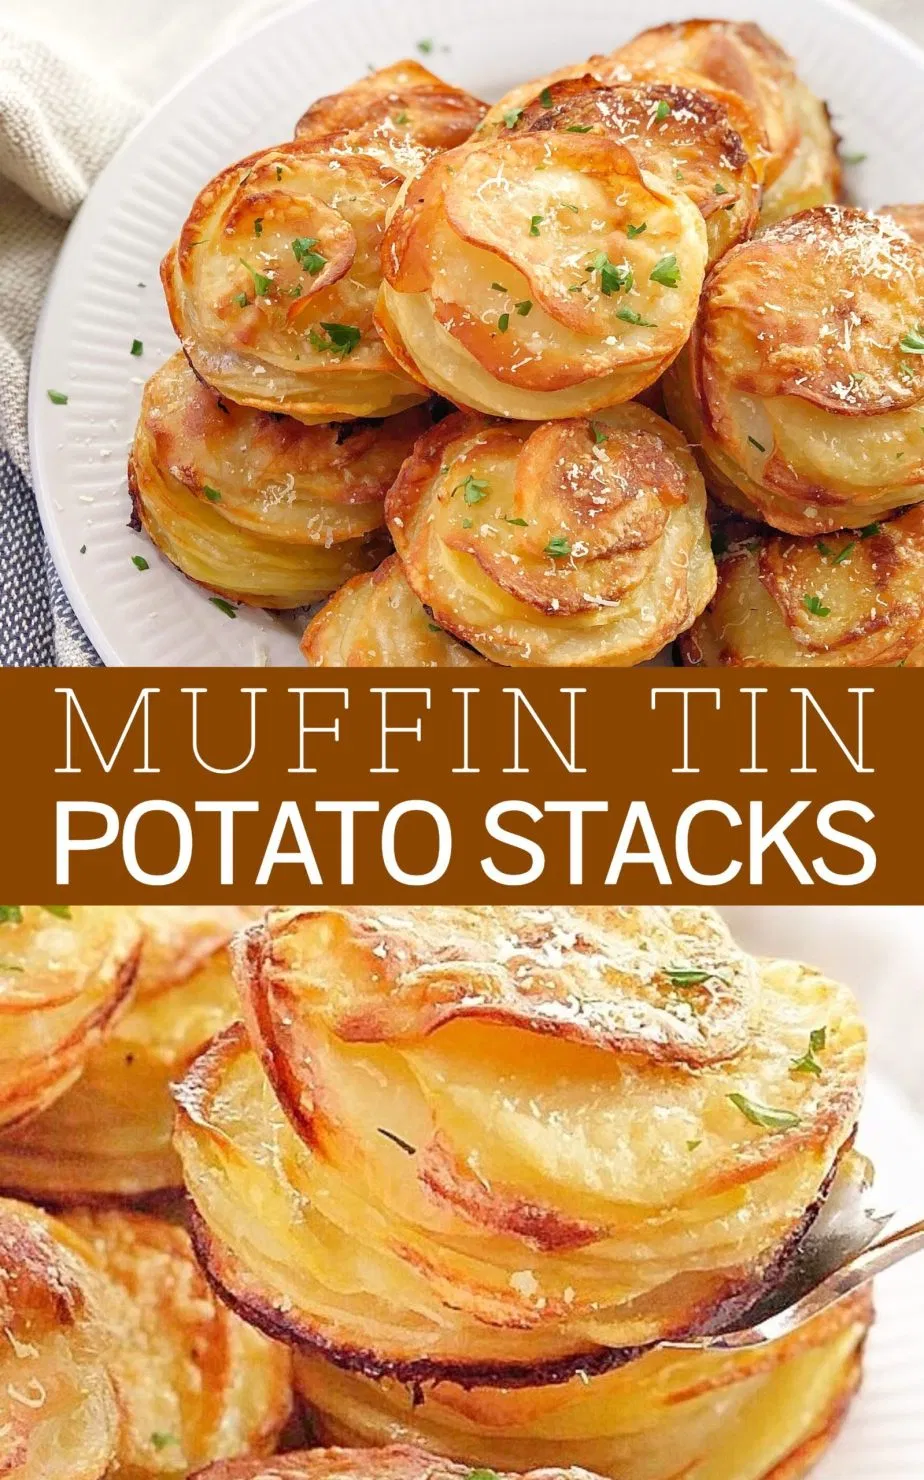 Muffin Tin Potato Stacks - these are like little individual serves of au gratin potatoes! Super easy, they are made in a muffin tin. The whole family will go made for these! #chefnotrequired #muffintinrecipes #muffinssalés